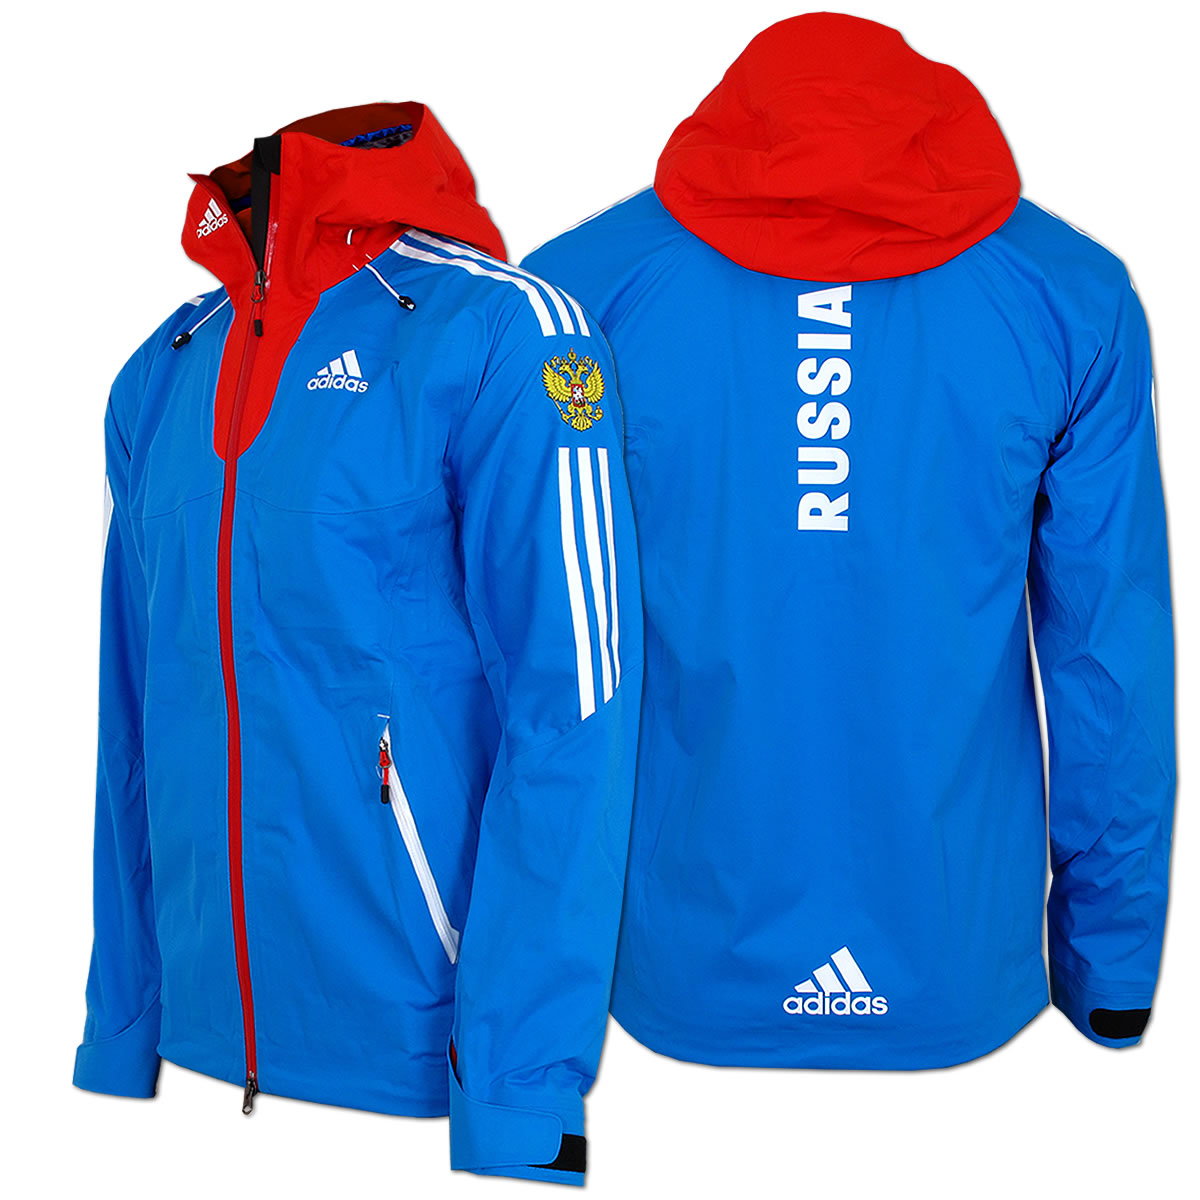 adidas Damen Athleten Jacke Cross Country Jacket Outdoor